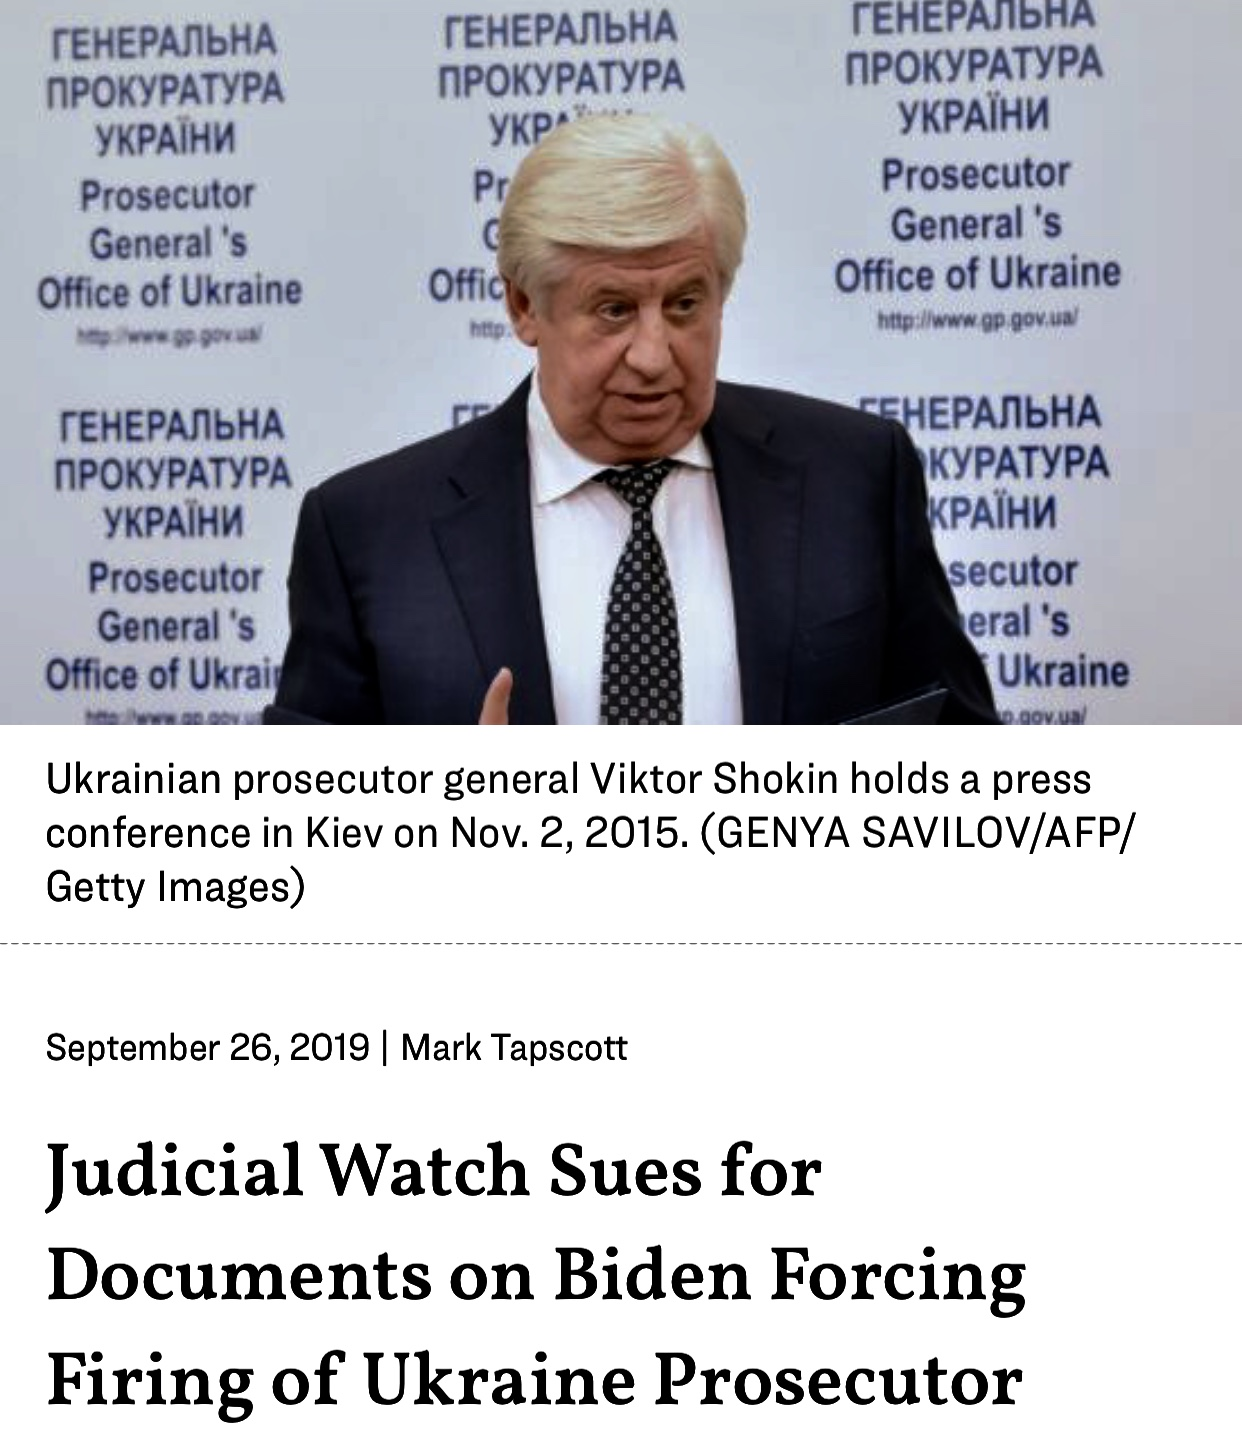 Judicial Watch Sues For Documents on Biden Forcing Firing of Ukraine Prosecutor